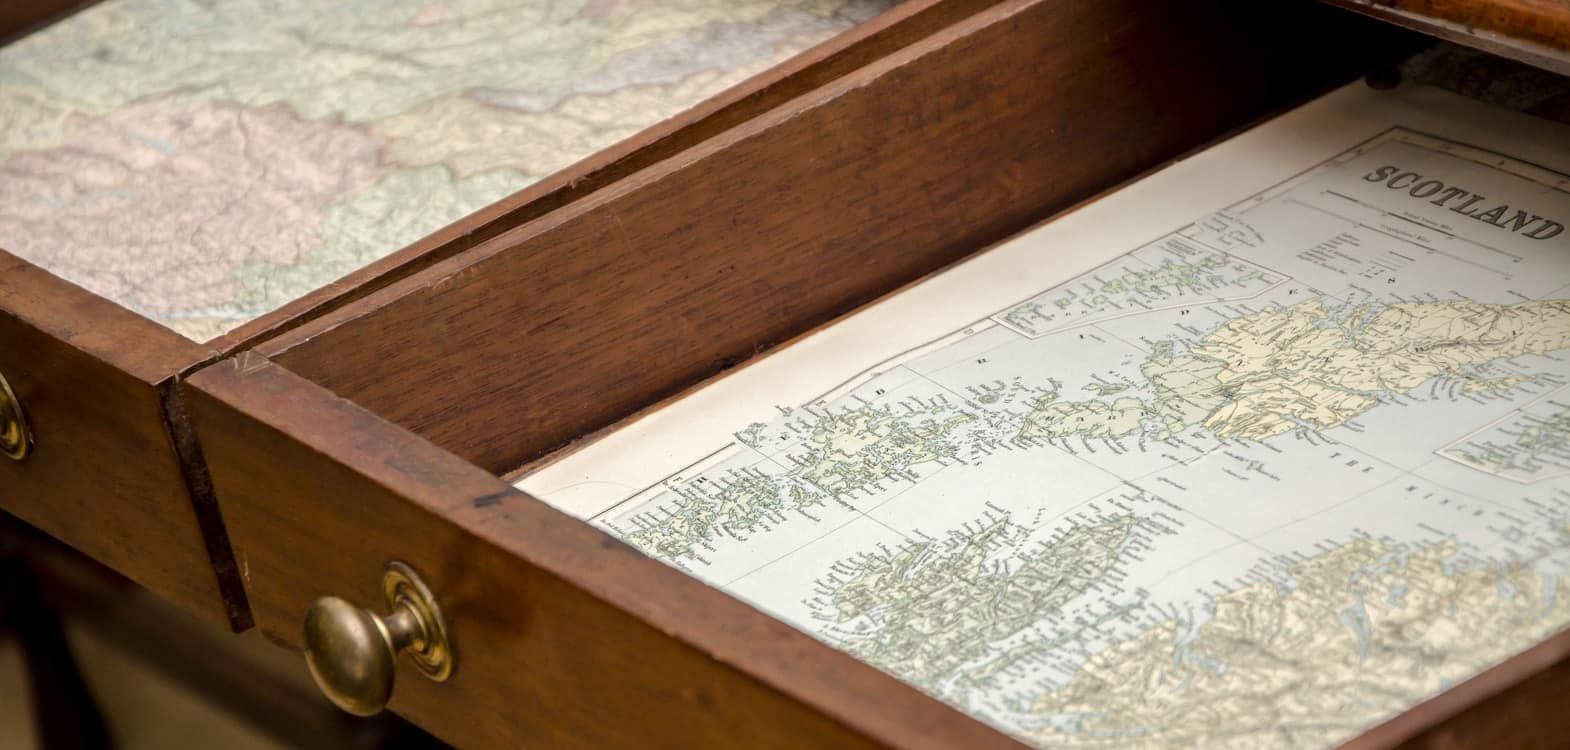 Dressing table drawers opened out to show maps of Scotland lining the draw bottoms at Firhall Bed & Breakfast in Scotland